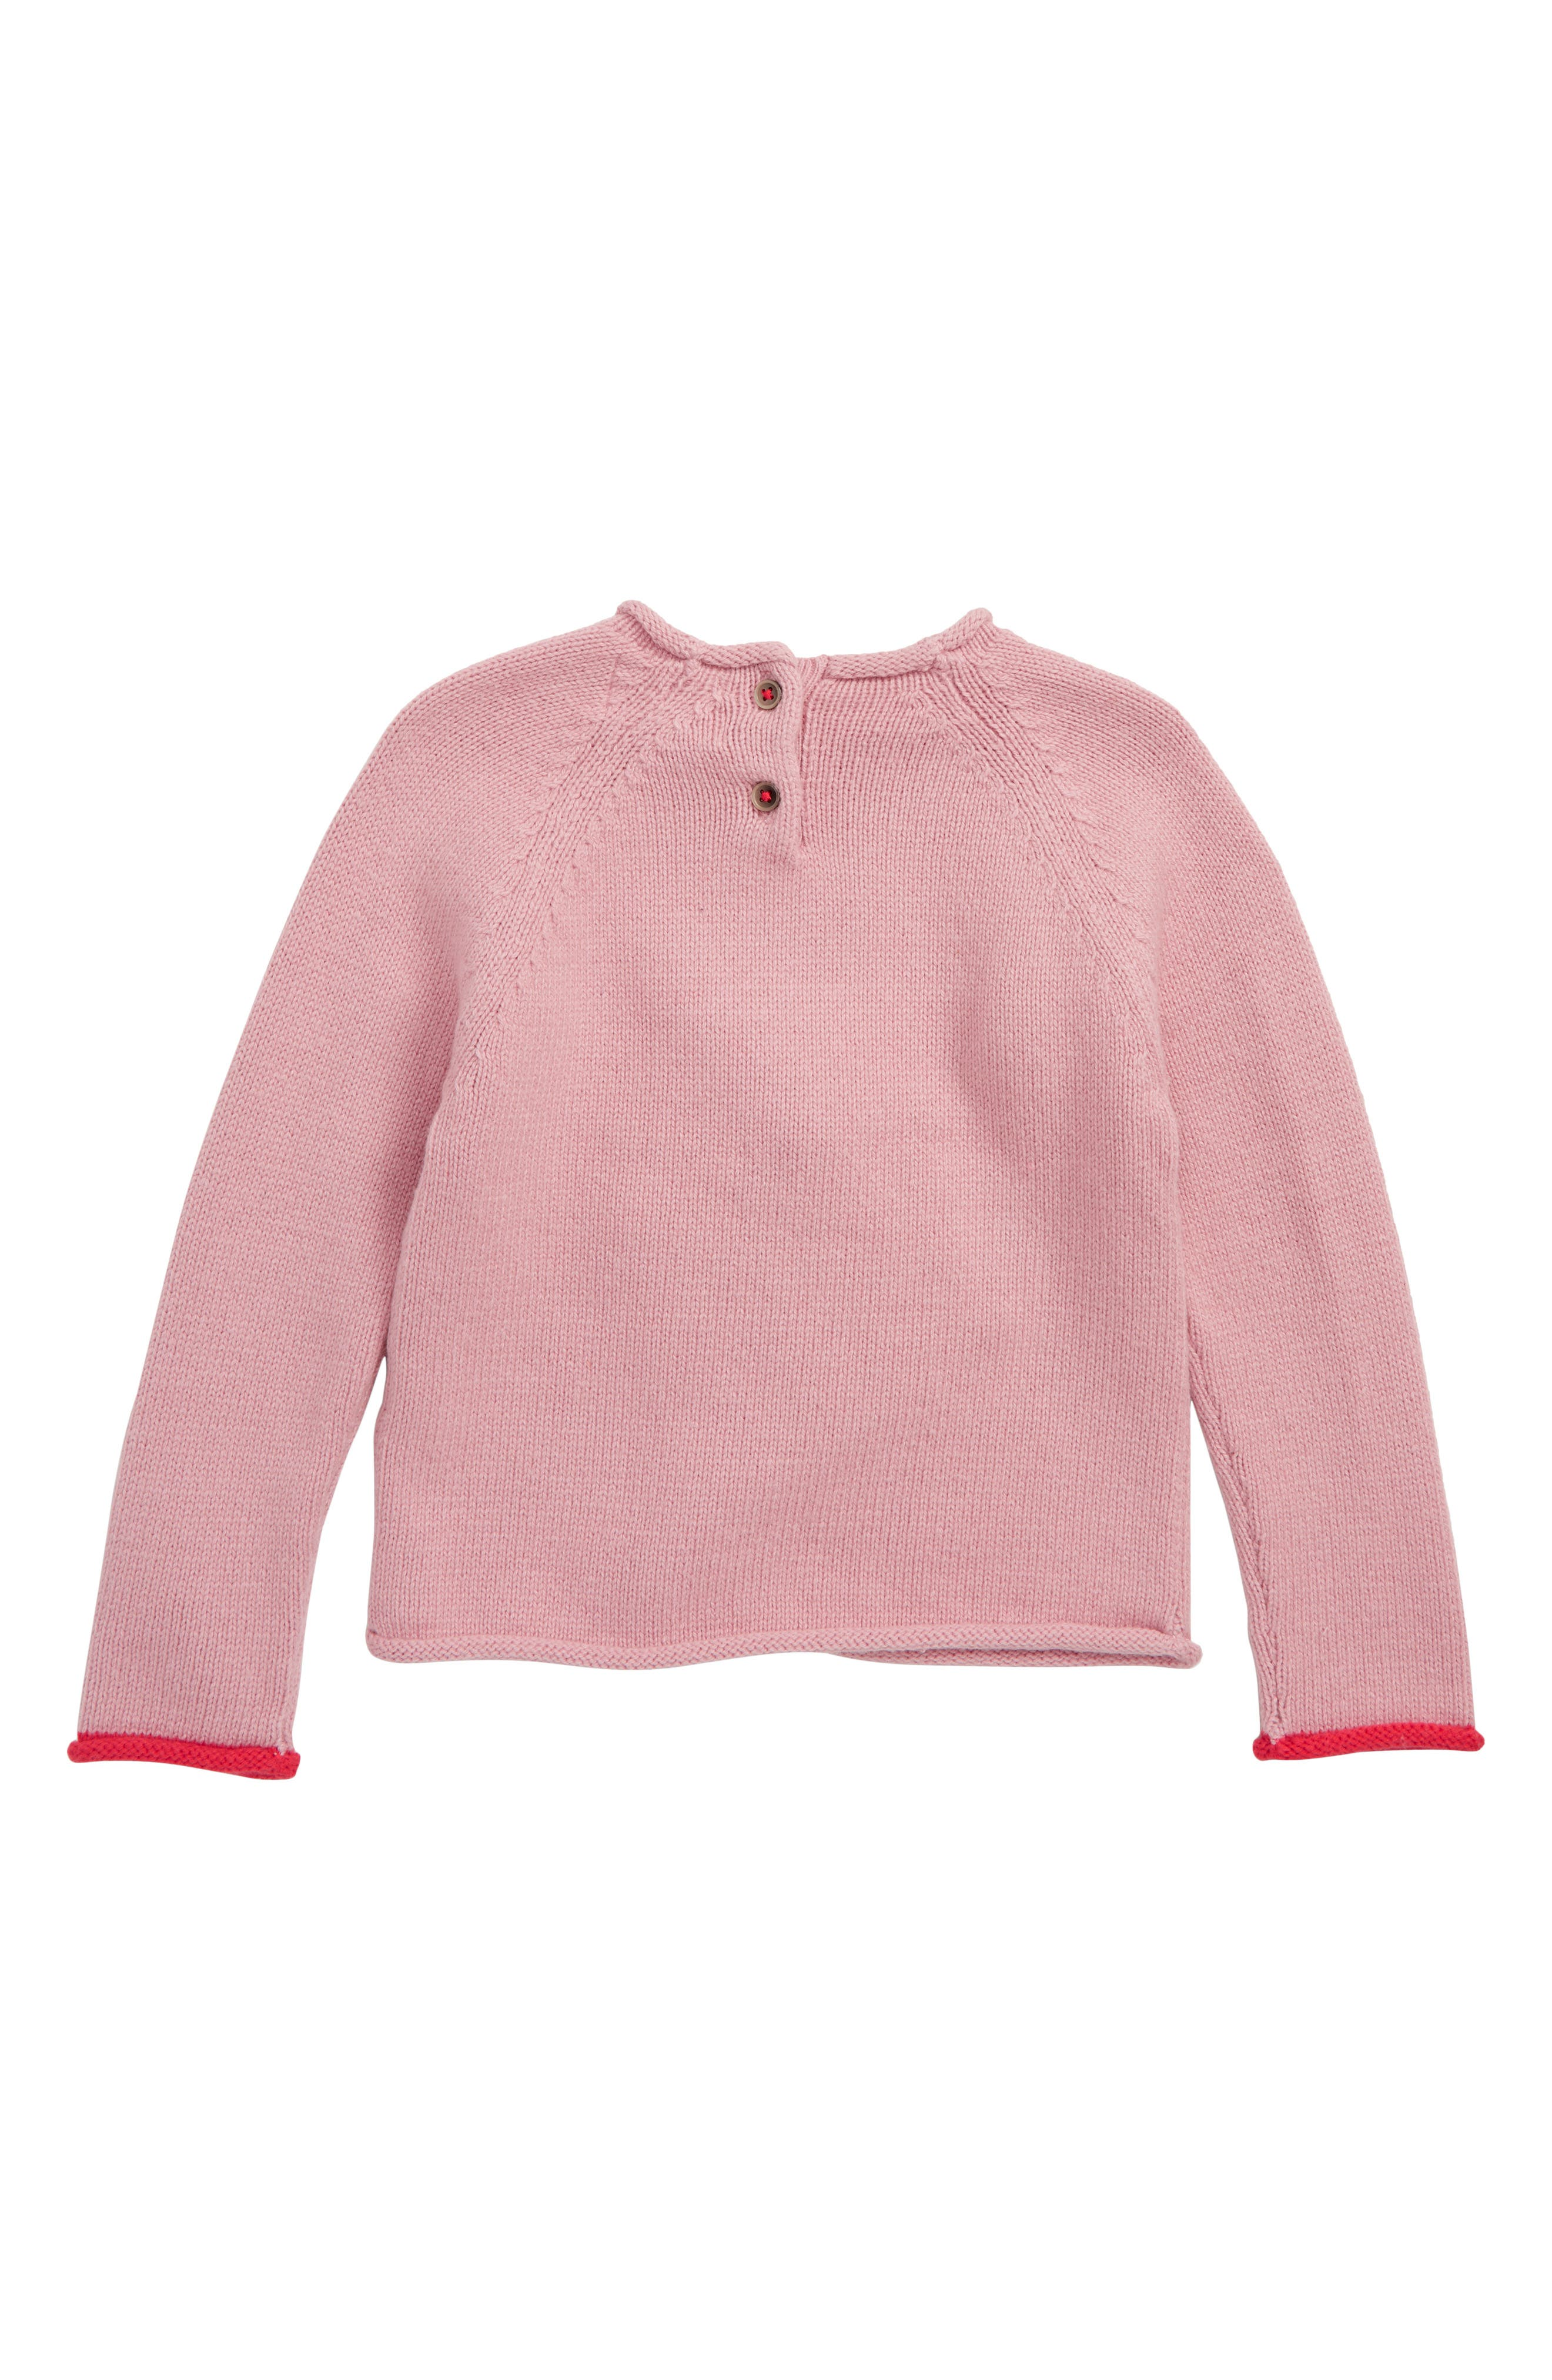 Christmas Day Sweater,                             Alternate thumbnail 2, color,                             VINTAGE PINK FATHER CHRISTM